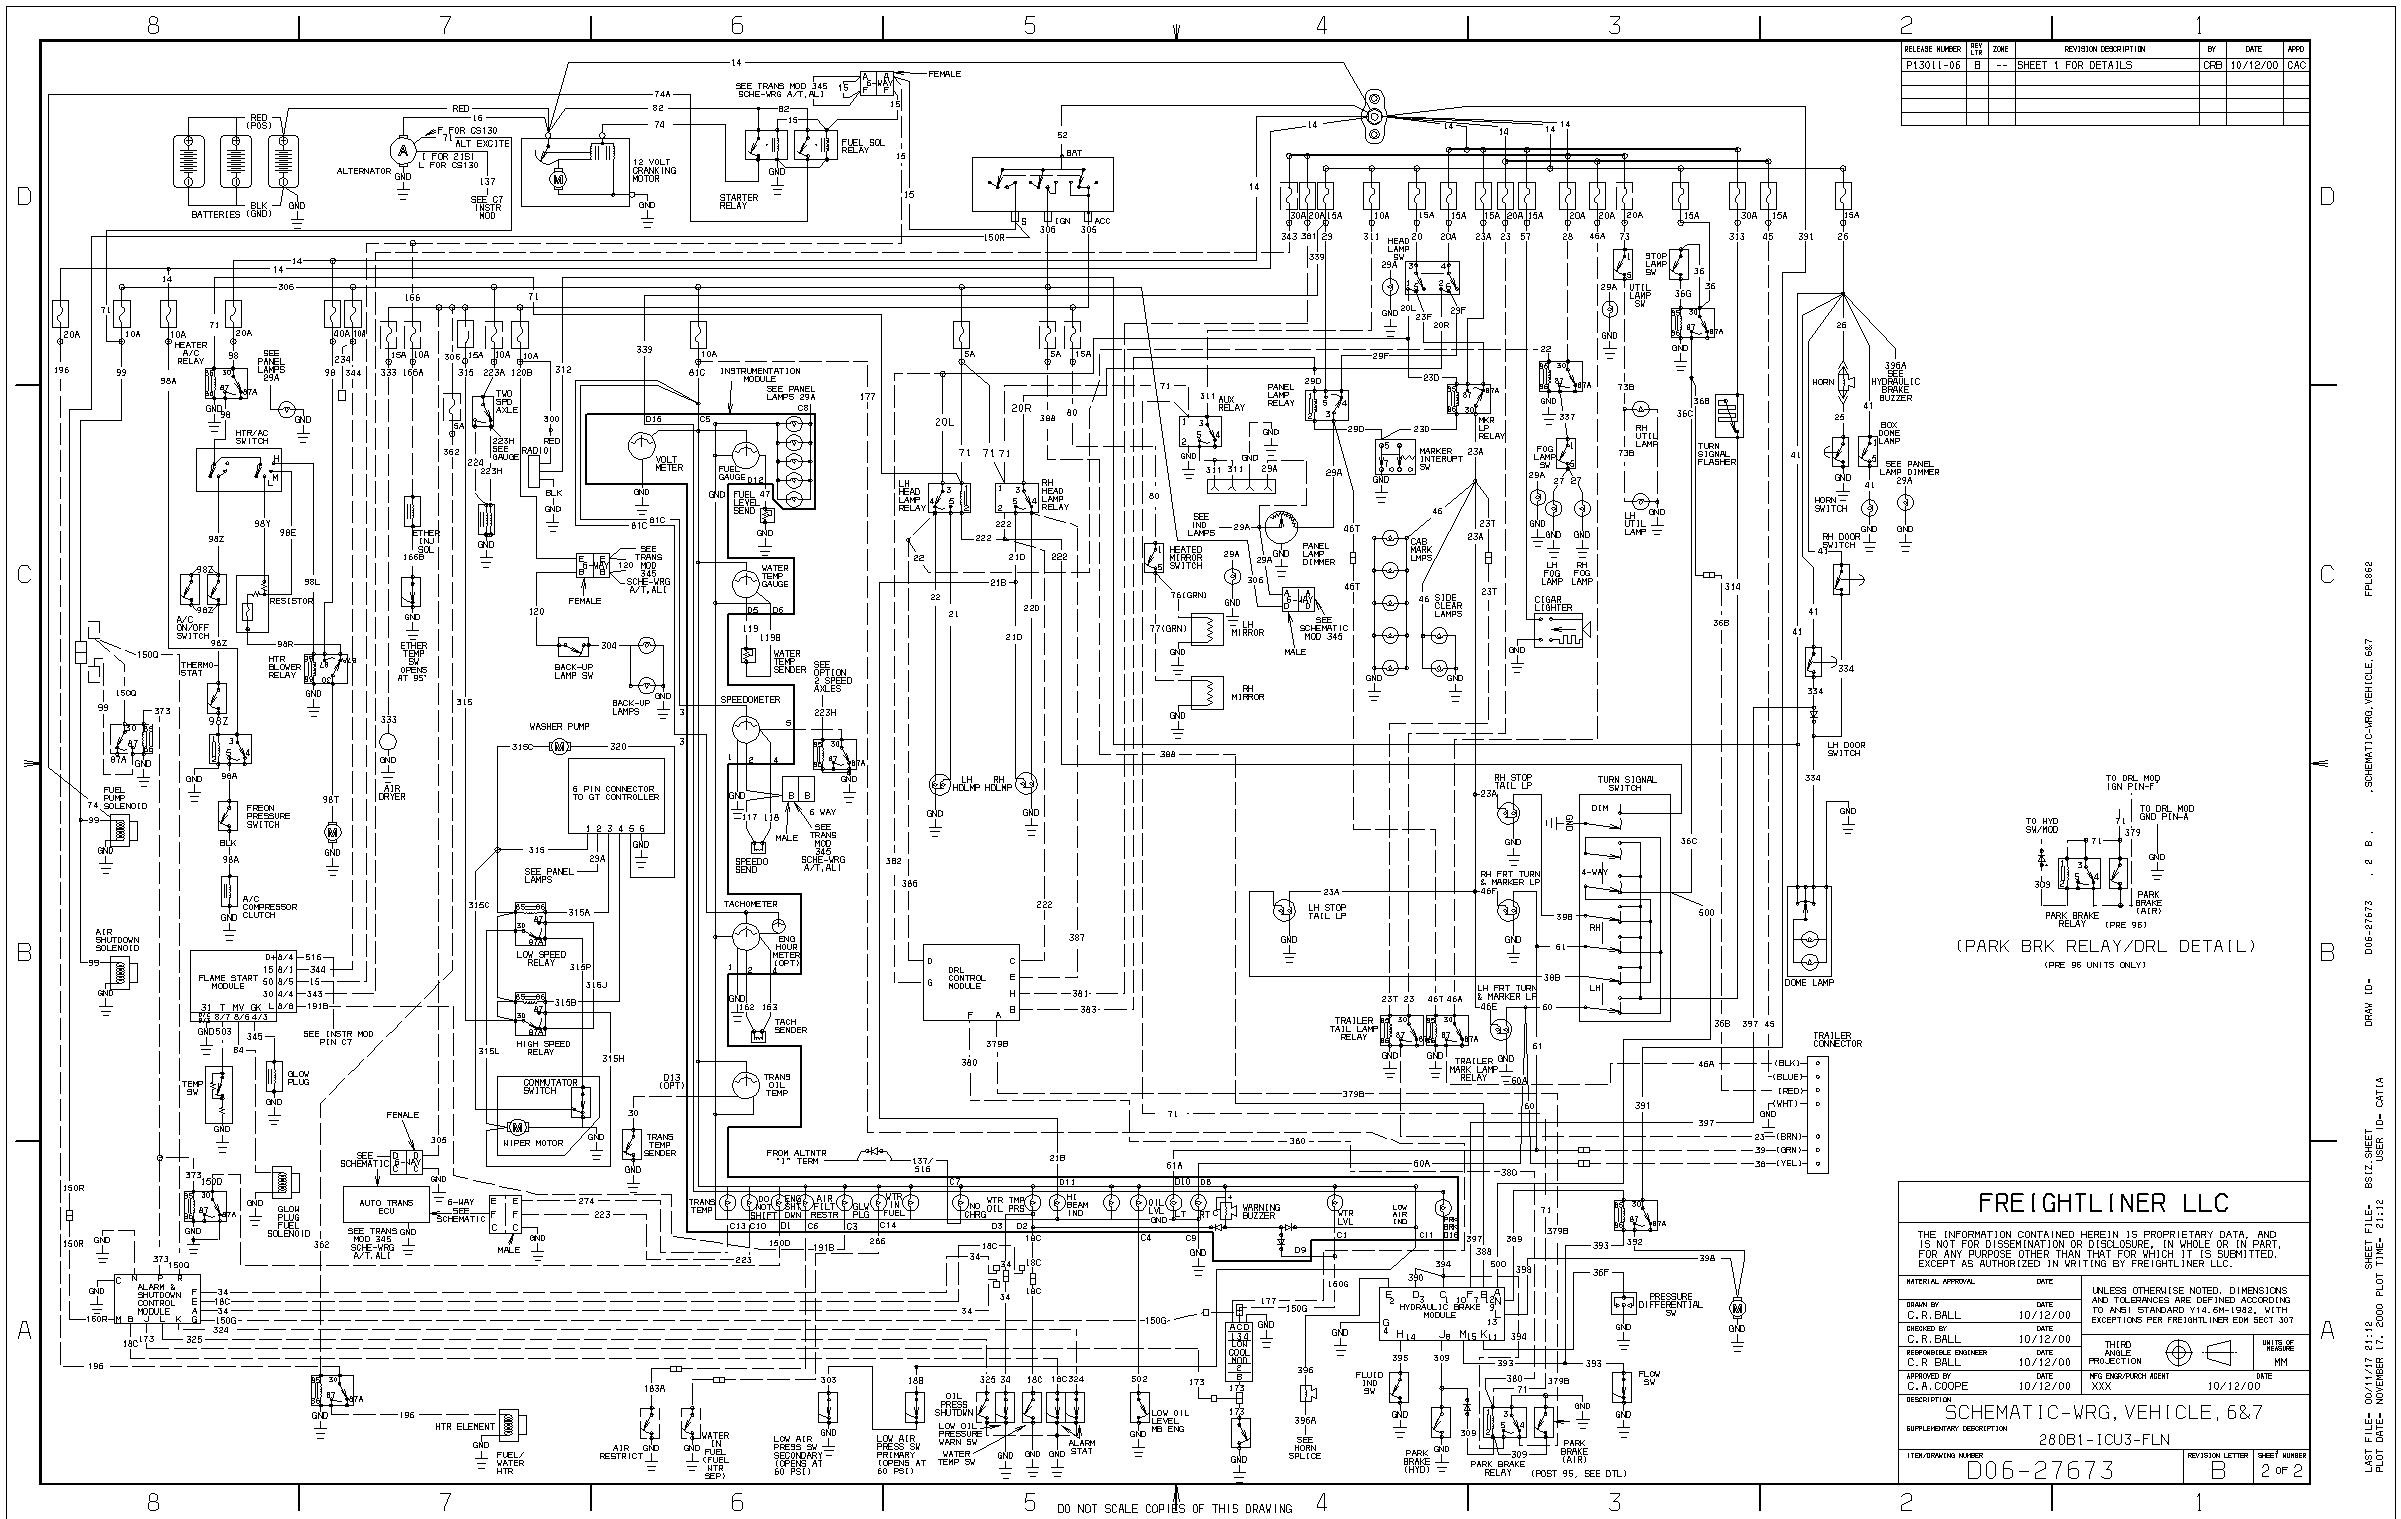 1994 Toyota Camry Engine Diagram Wiring Library 2000 Sterling Truck Diagrams 2003 2 4